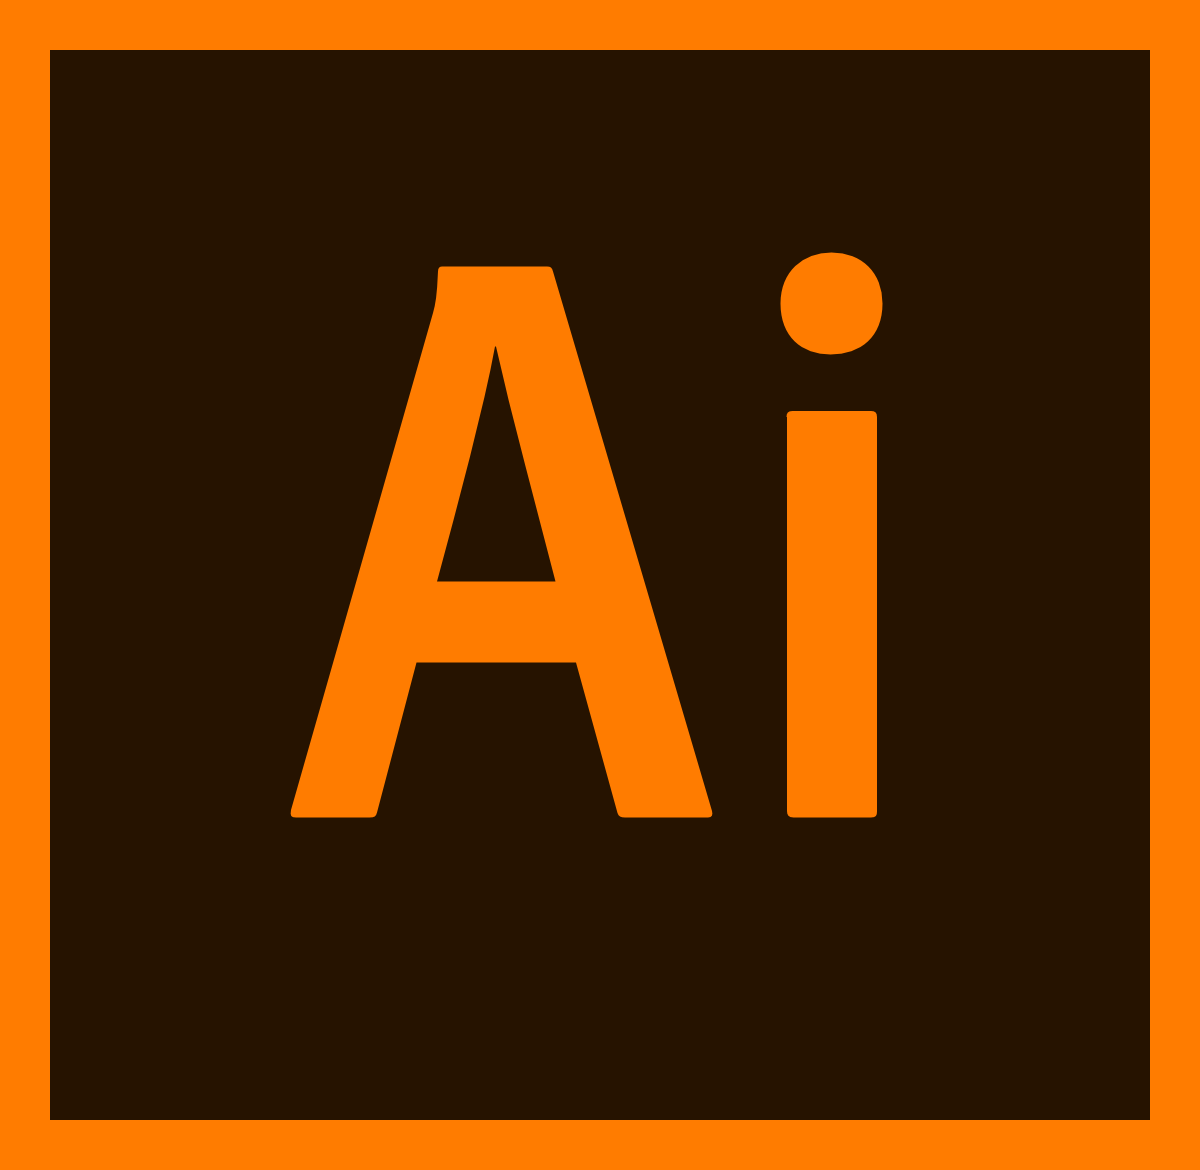 Adobe_Illustrator_CC_icon.png